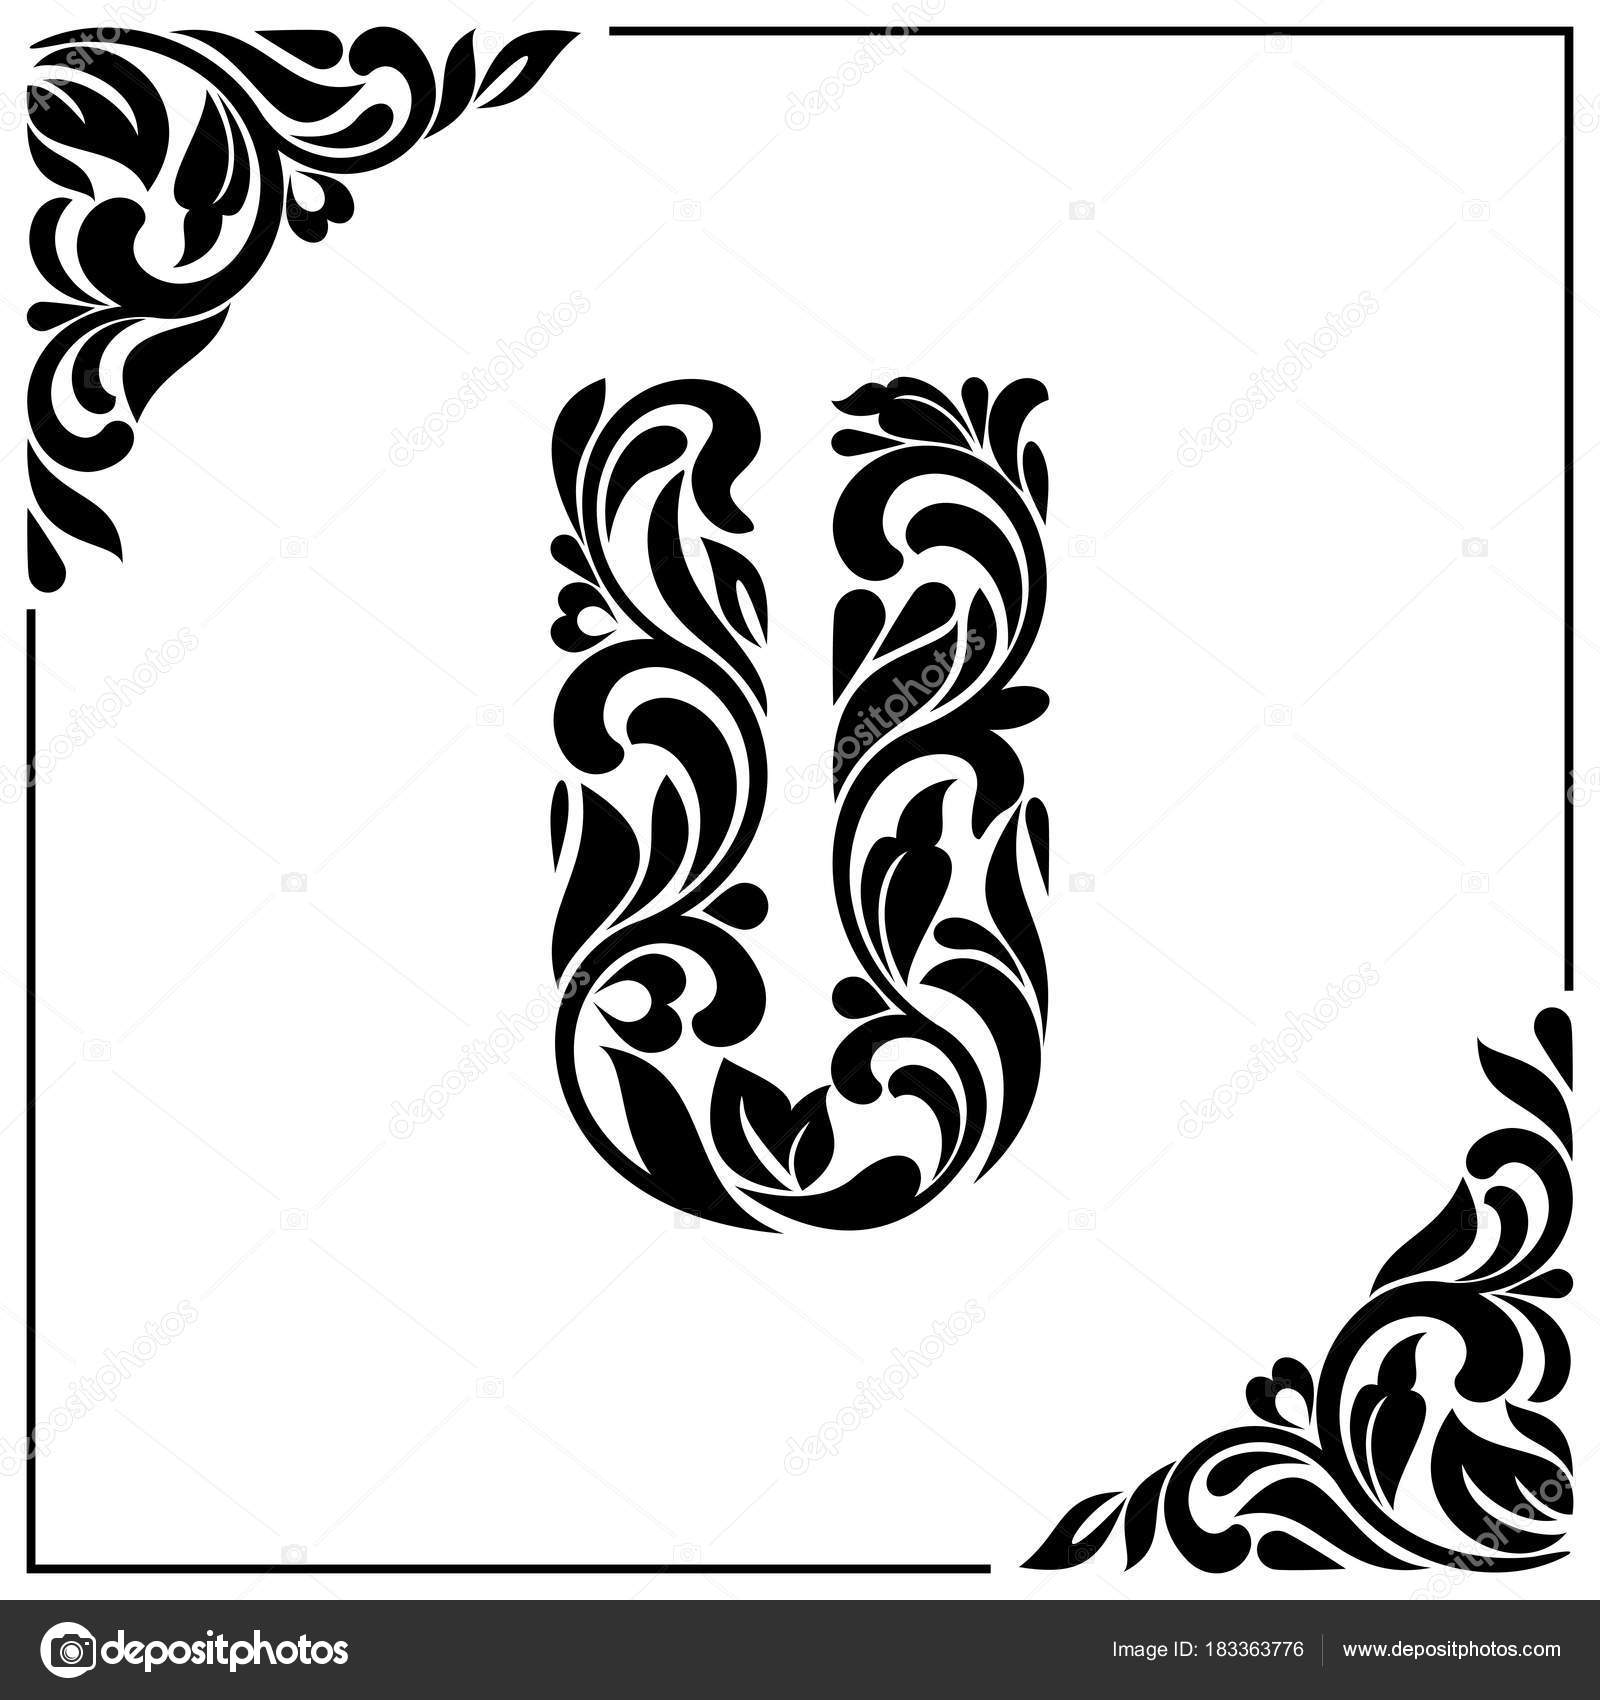 The Letter U Decorative Font With Swirls And Floral Elements